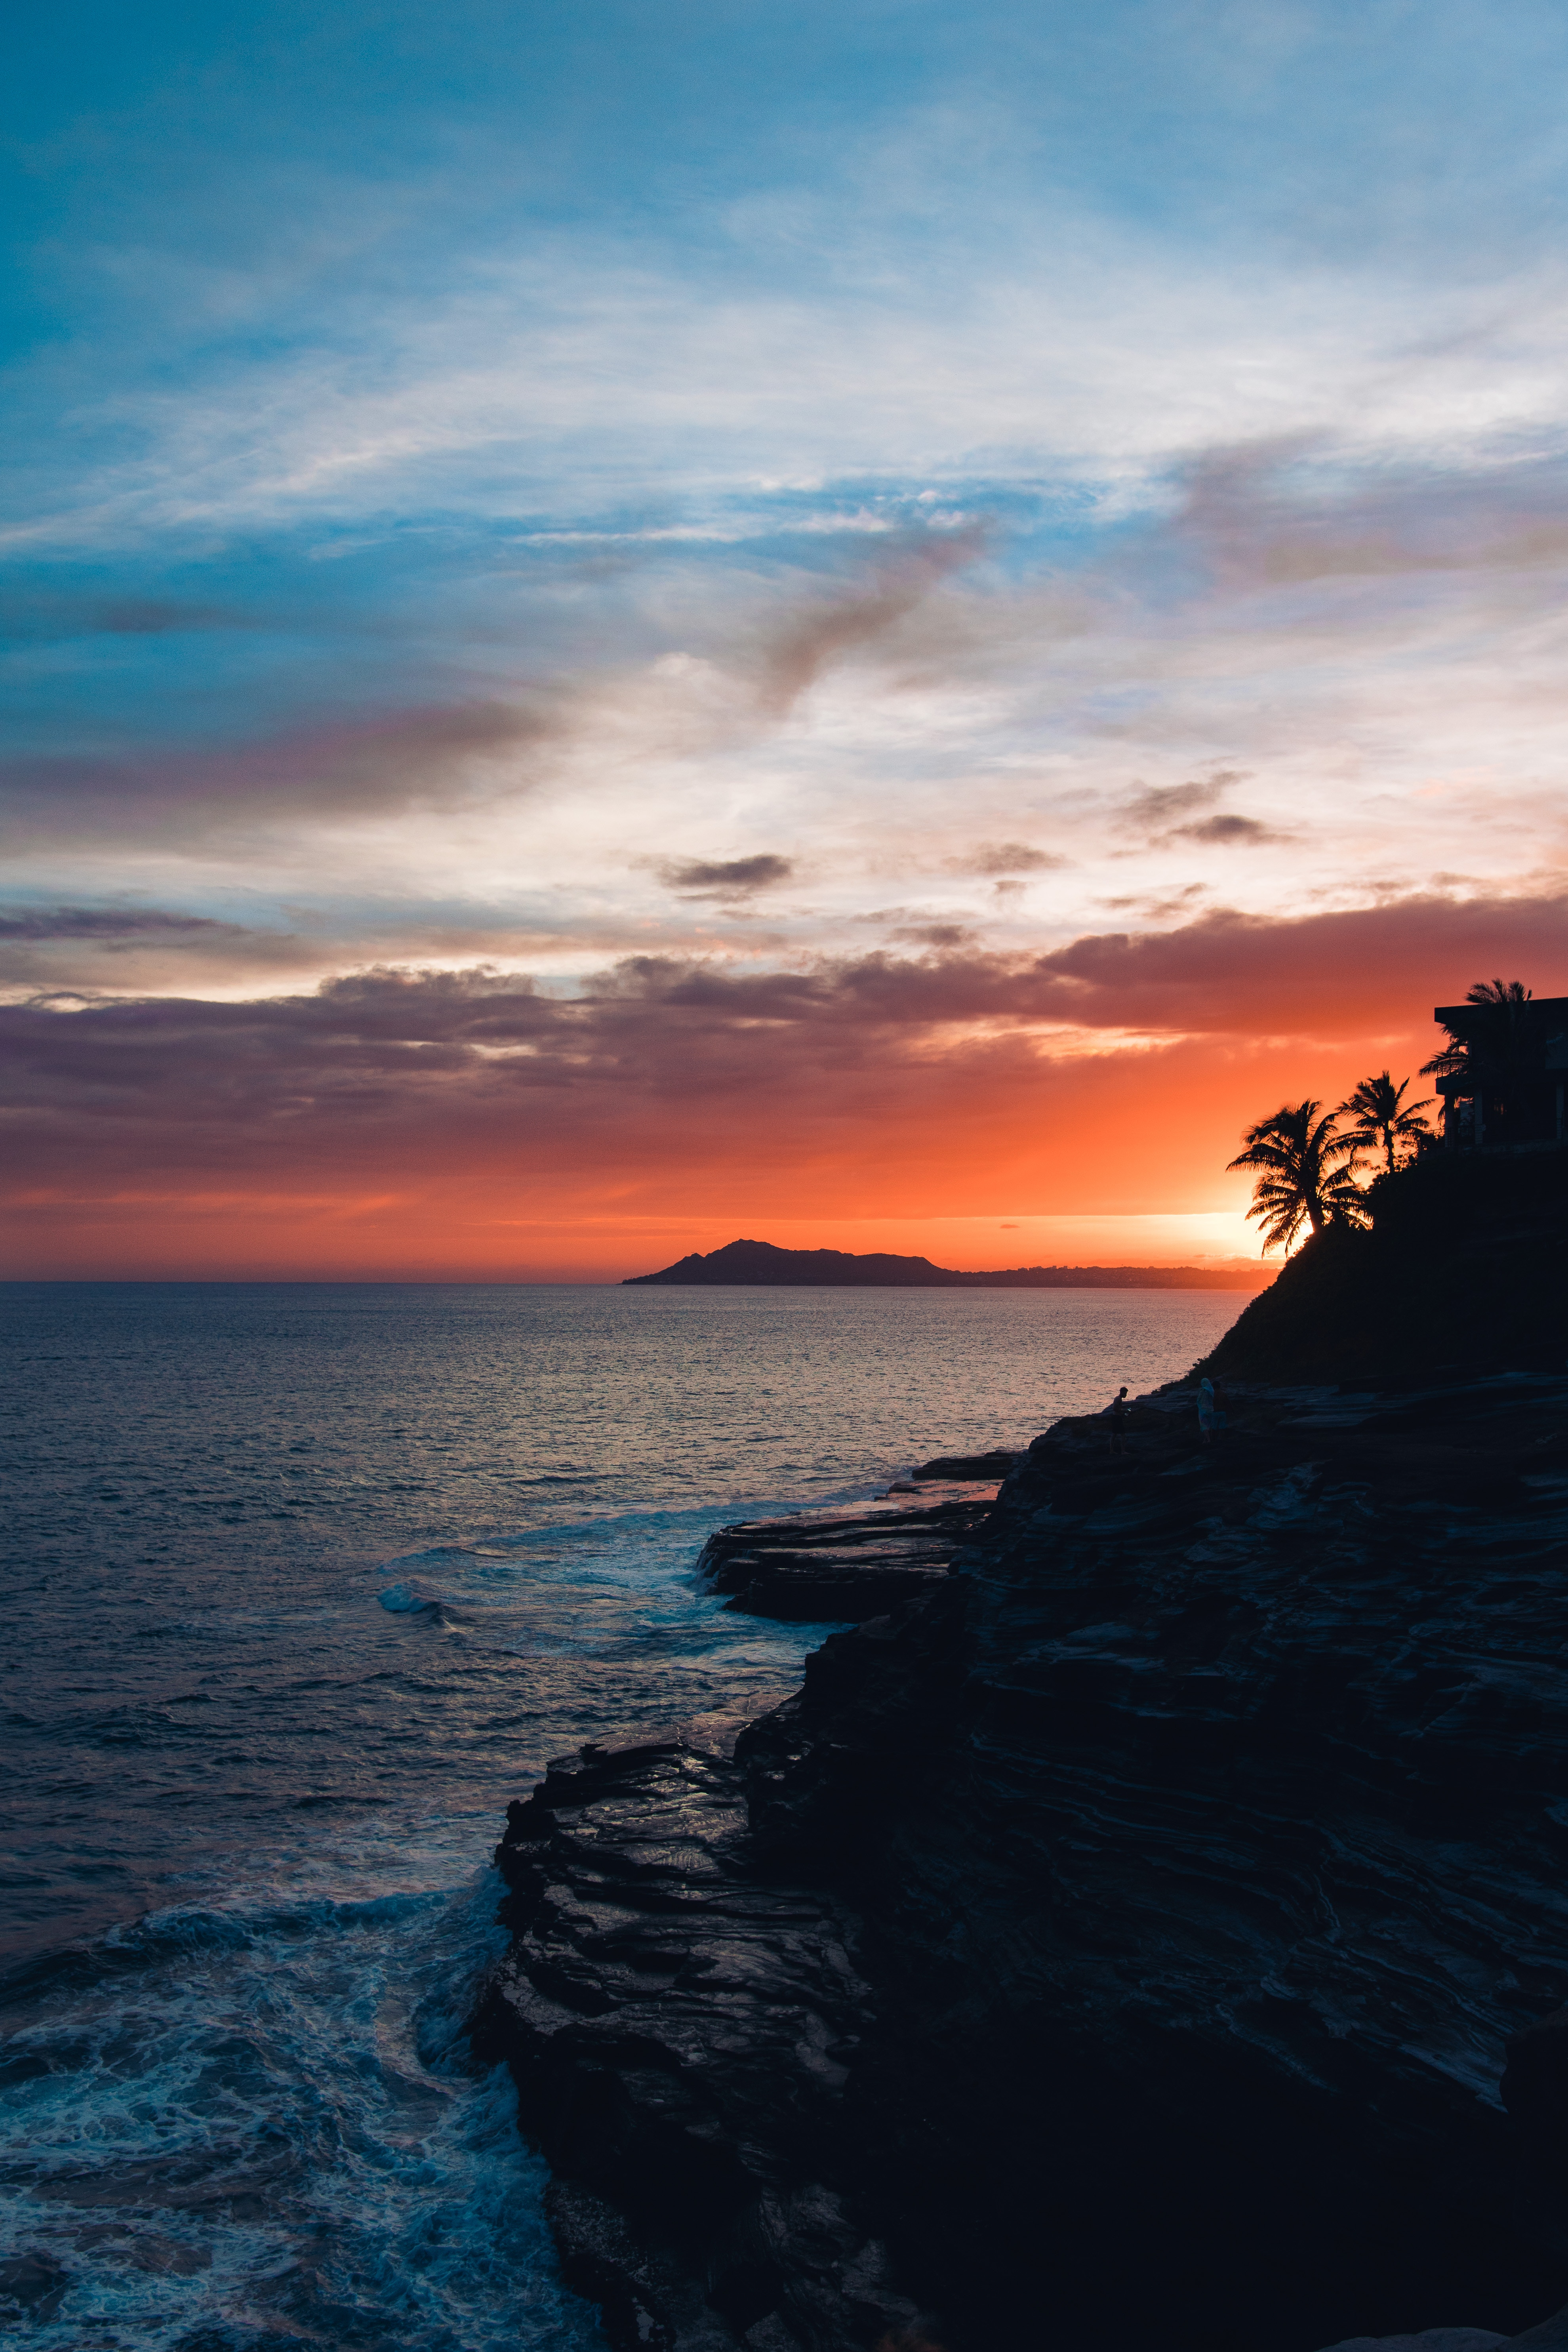 156564 download wallpaper Nature, Rock, Sea, Sunset, Night, Sky, Palm screensavers and pictures for free